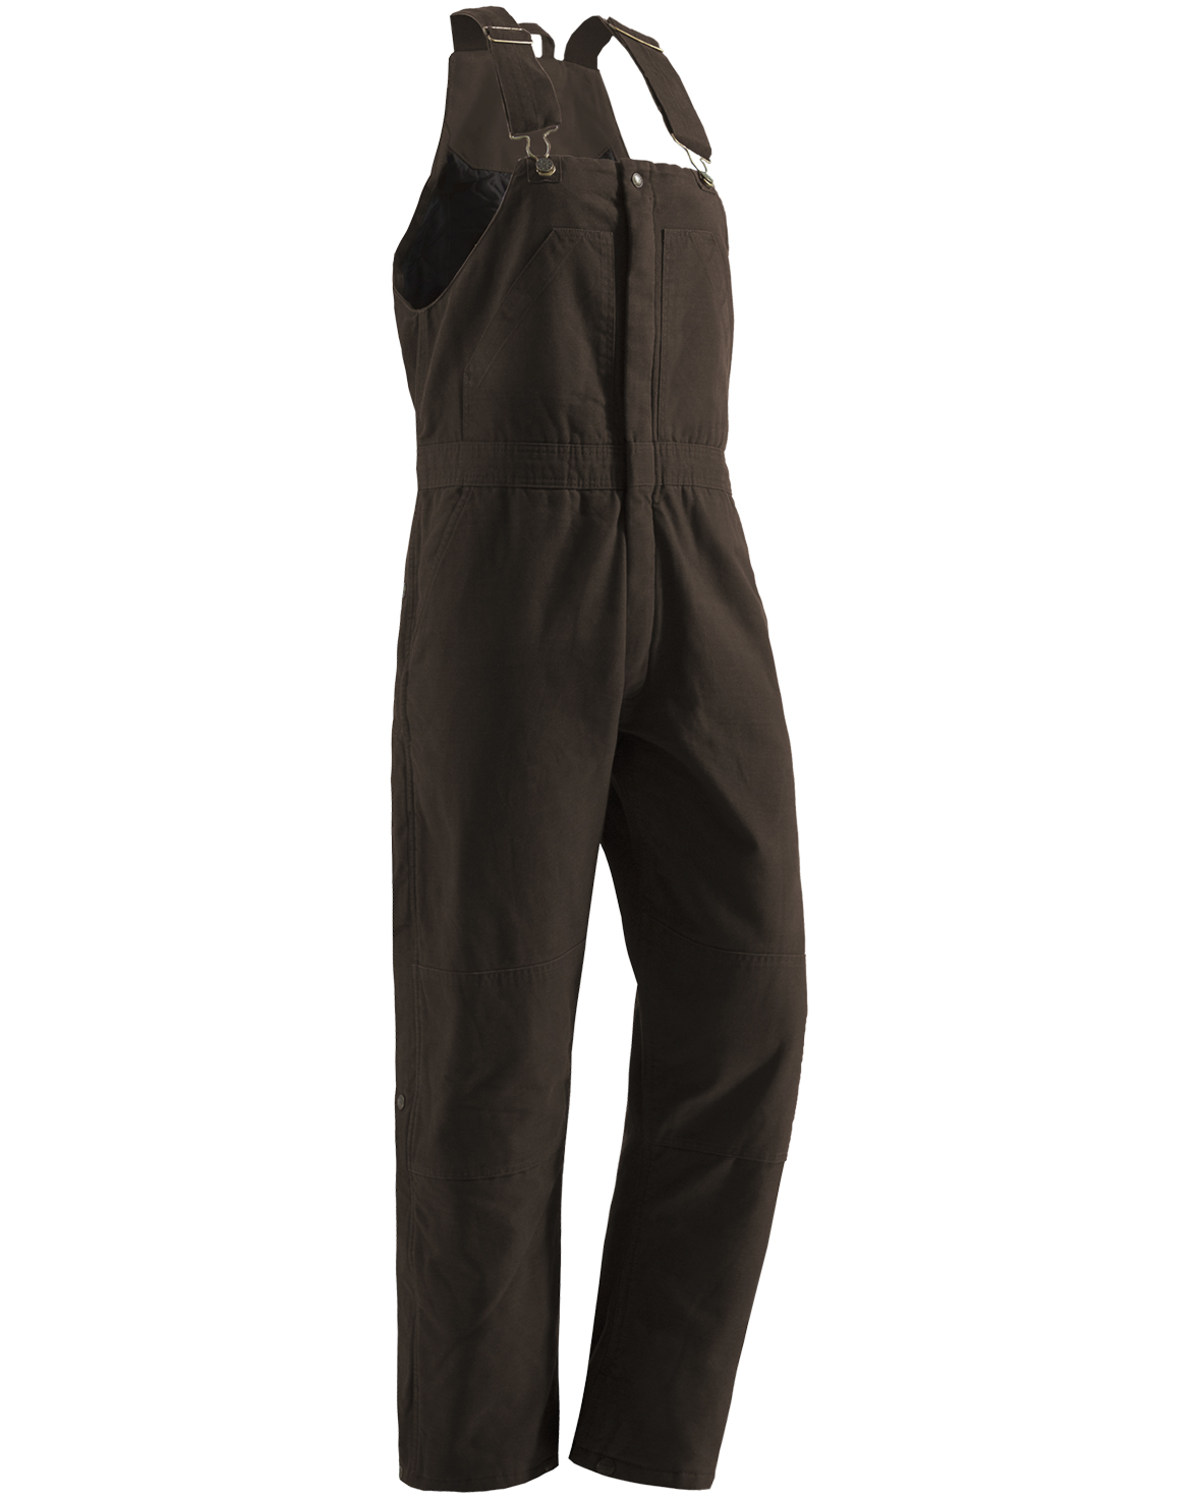 Berne Women S Washed Insulated Bib Overalls Tall